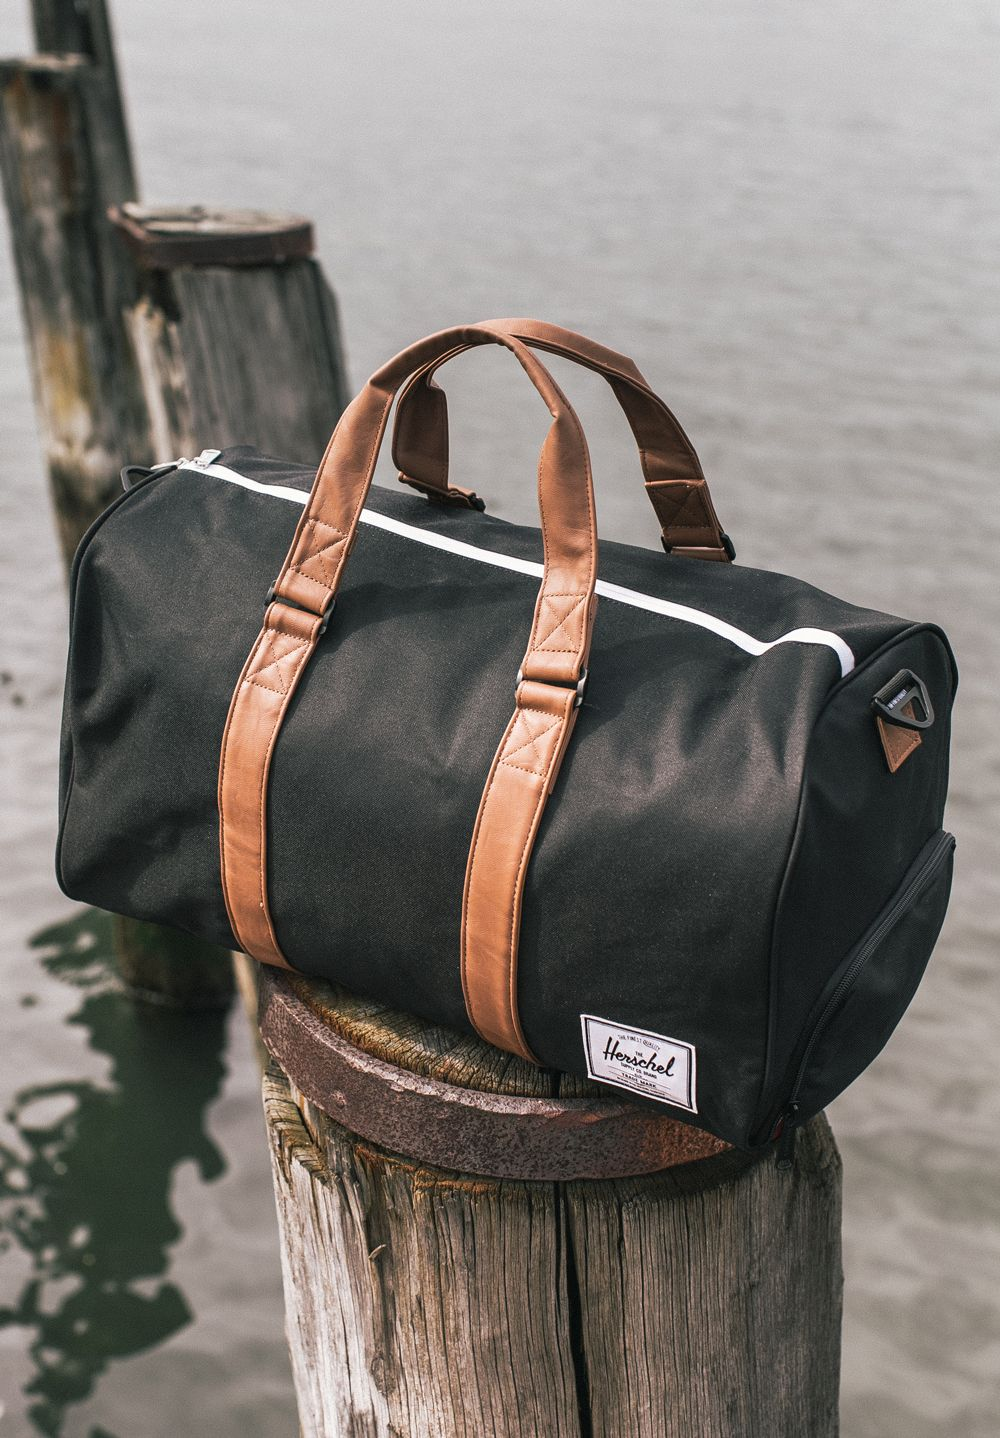 The Herschel Supply Co. Novel Duffle - The official bag of ... f933799df11d1